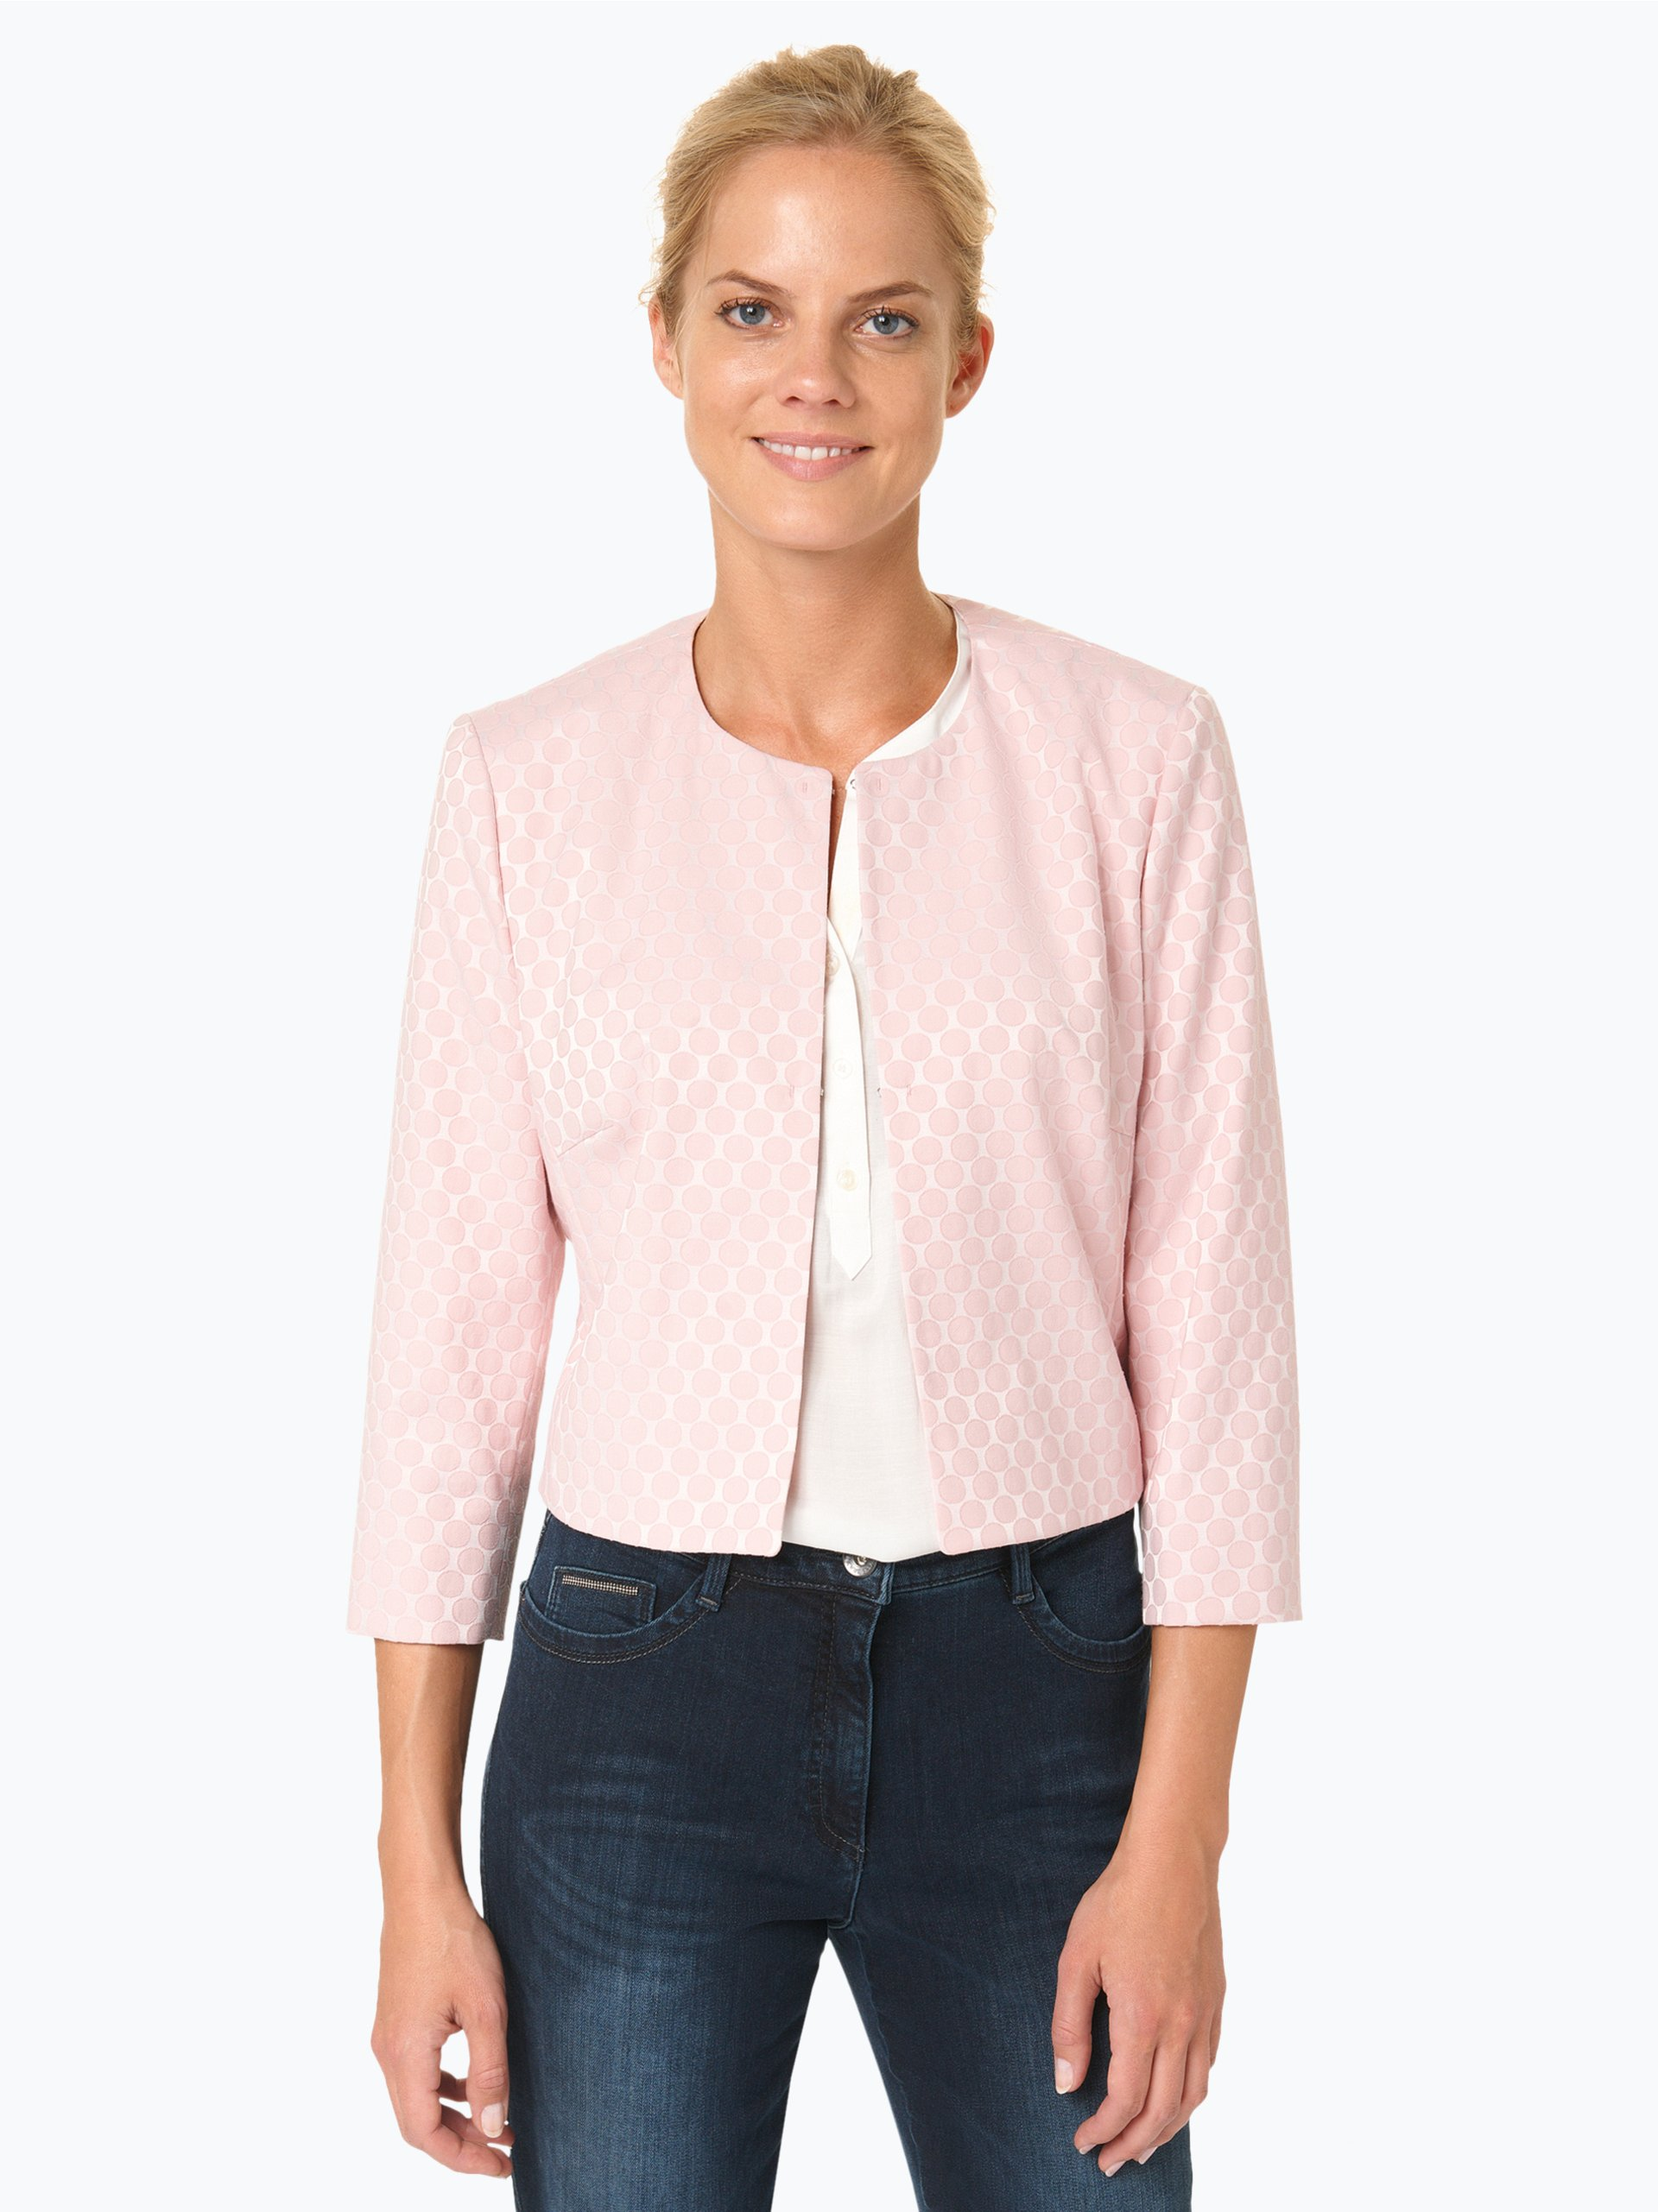 gerry weber damen blazer lemon twist rosa gepunktet online kaufen vangraaf com. Black Bedroom Furniture Sets. Home Design Ideas